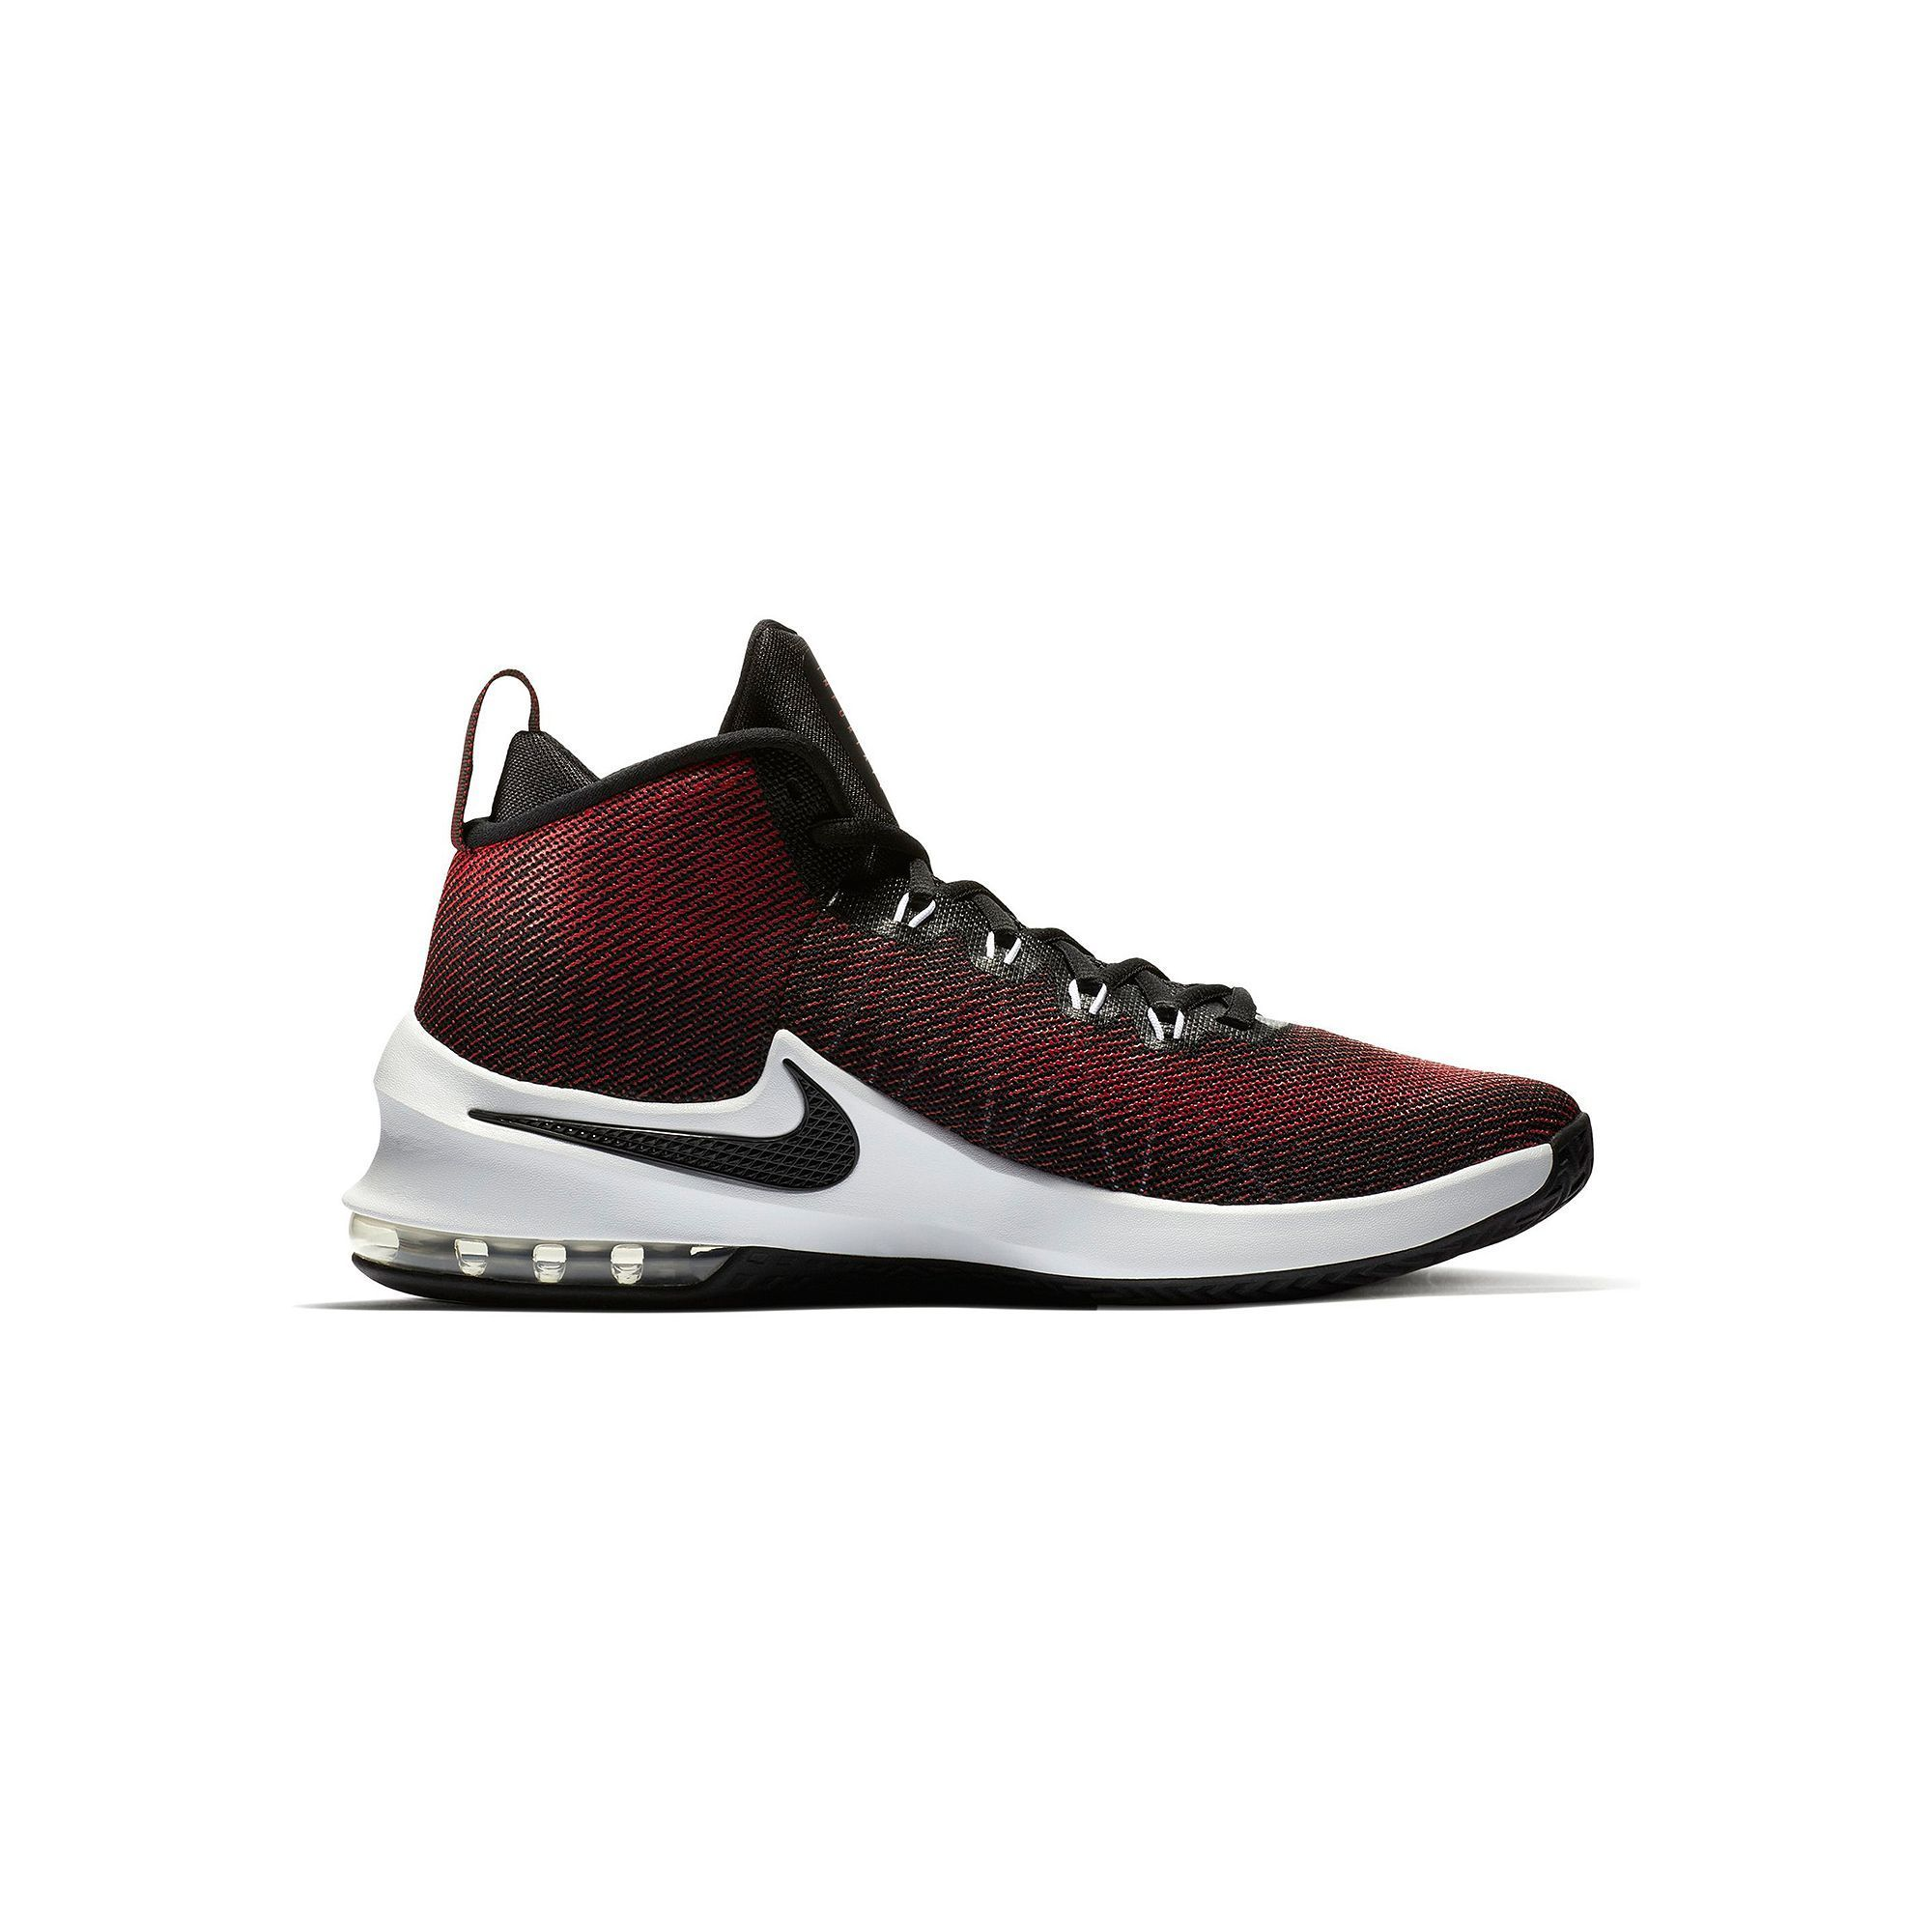 Nike Air Max Infuriate Mid Men's Basketball Shoes